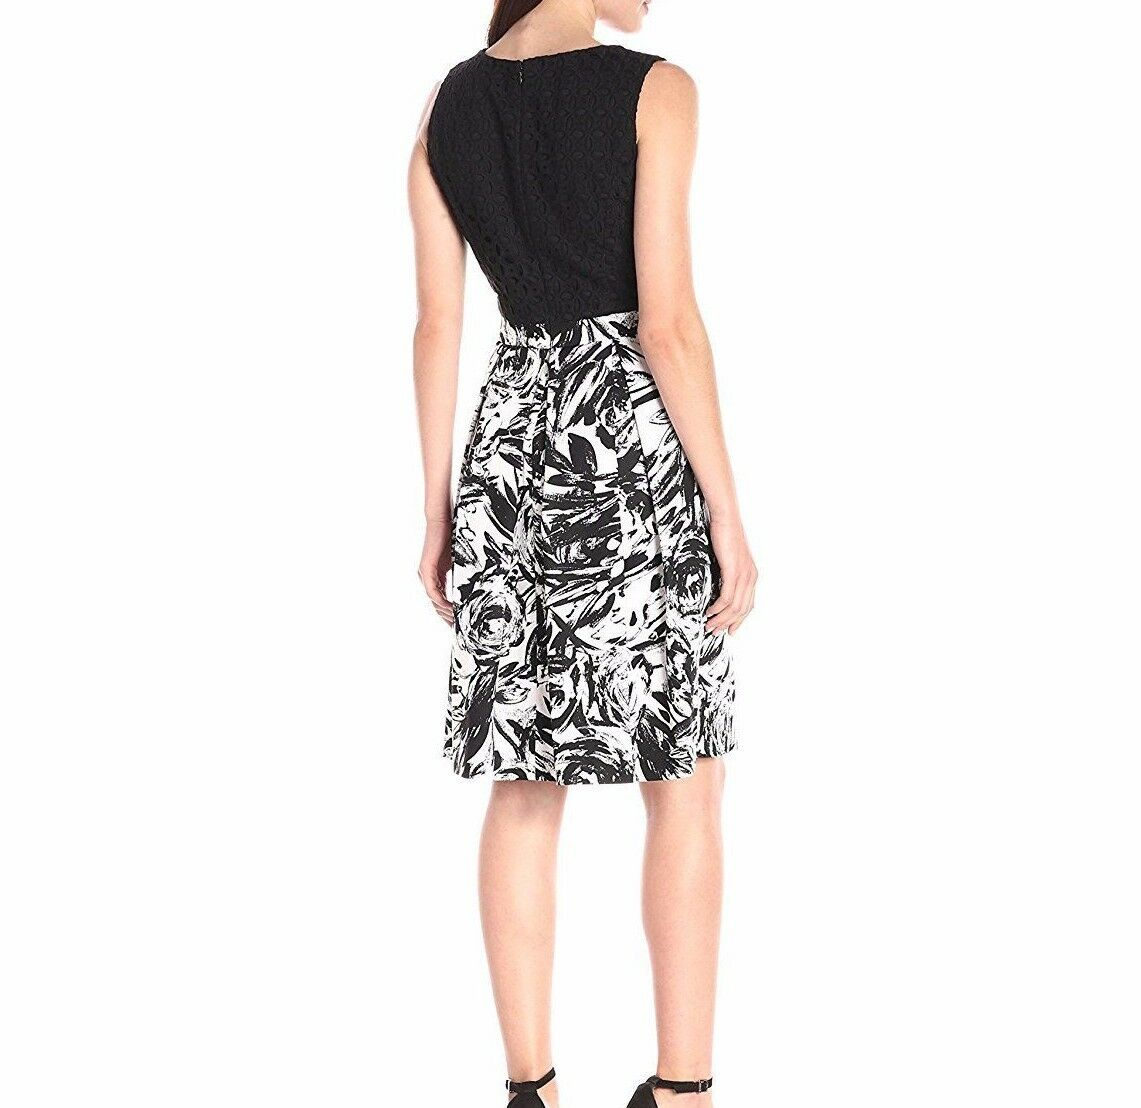 Ellen Tracy Casual Sleeveless Dress Fit and and and Flare with Printed Skirt-Size 6 9219ef